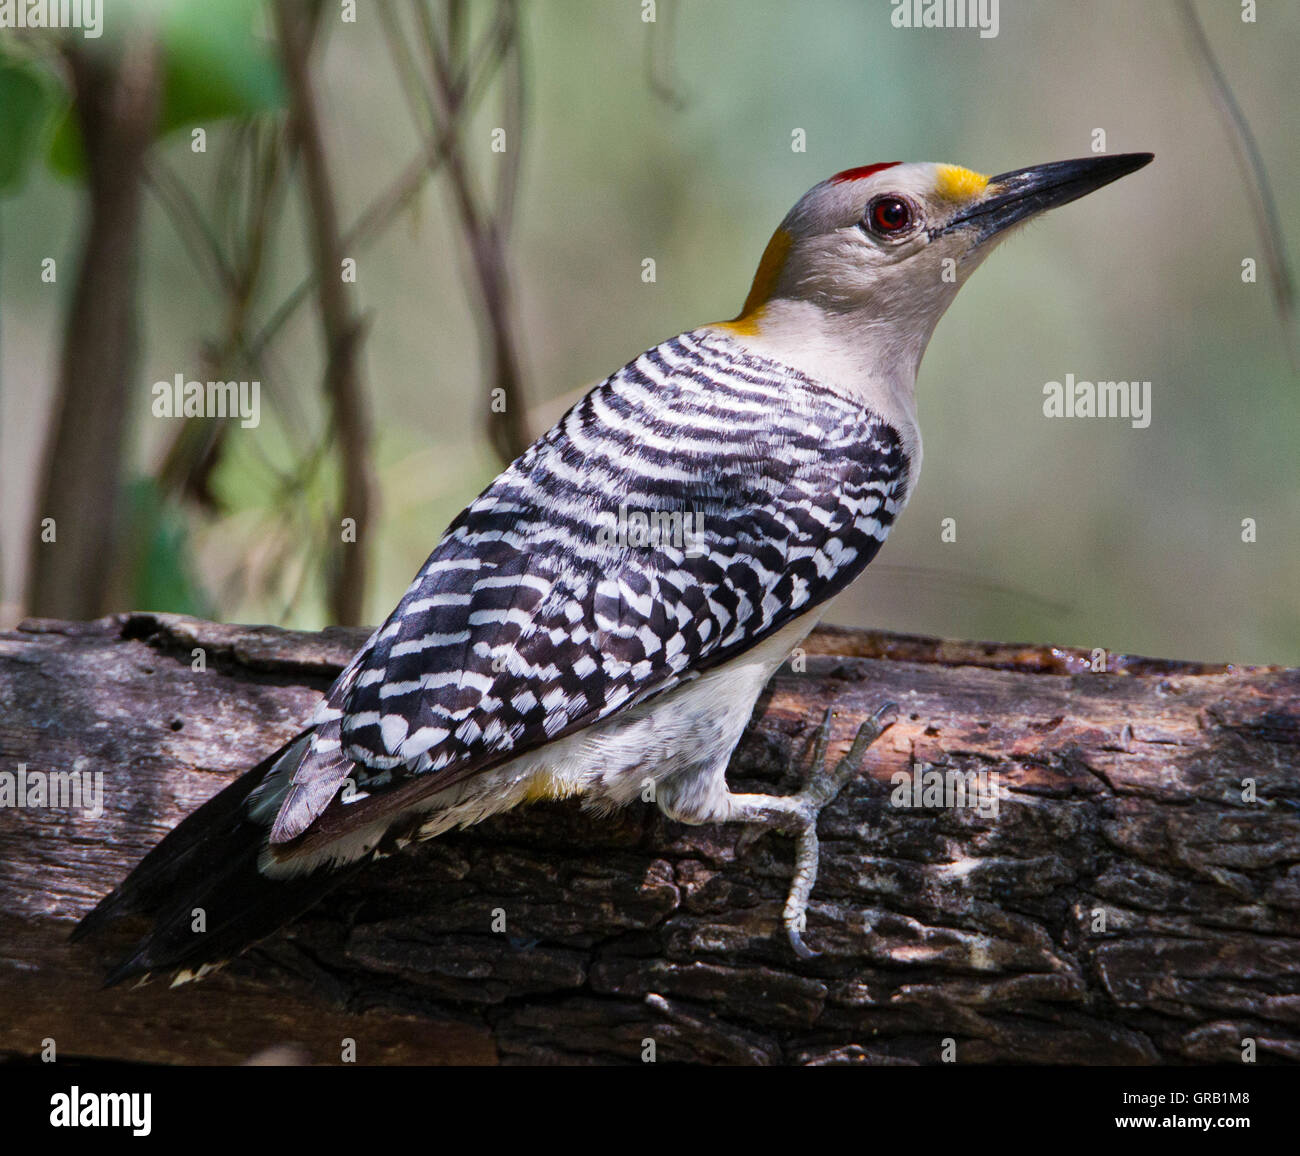 Golden-fronted Woodpecker (Melanerpes aurifrons) on a fallen tree trunk in Weslaco,Texas Stock Photo